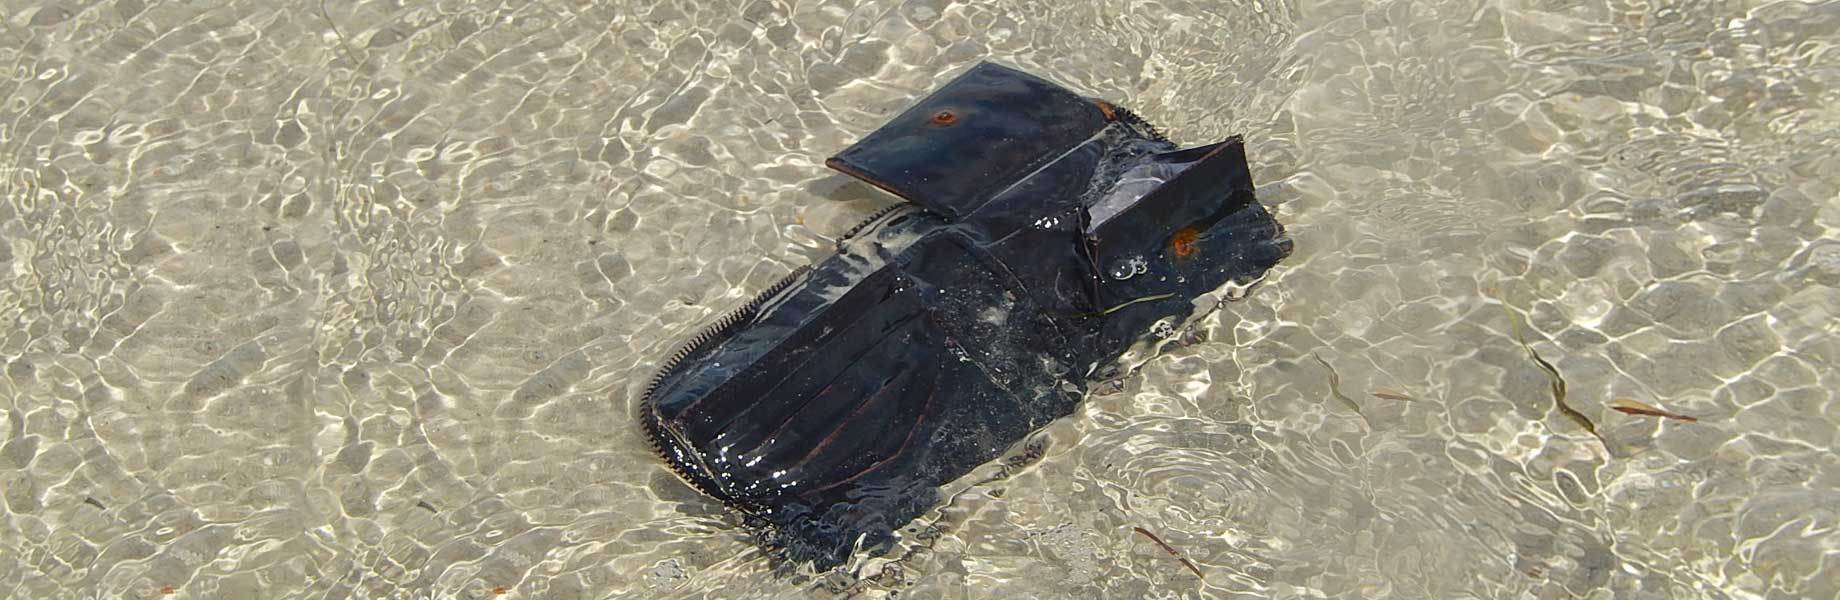 Leather wallet gets wet